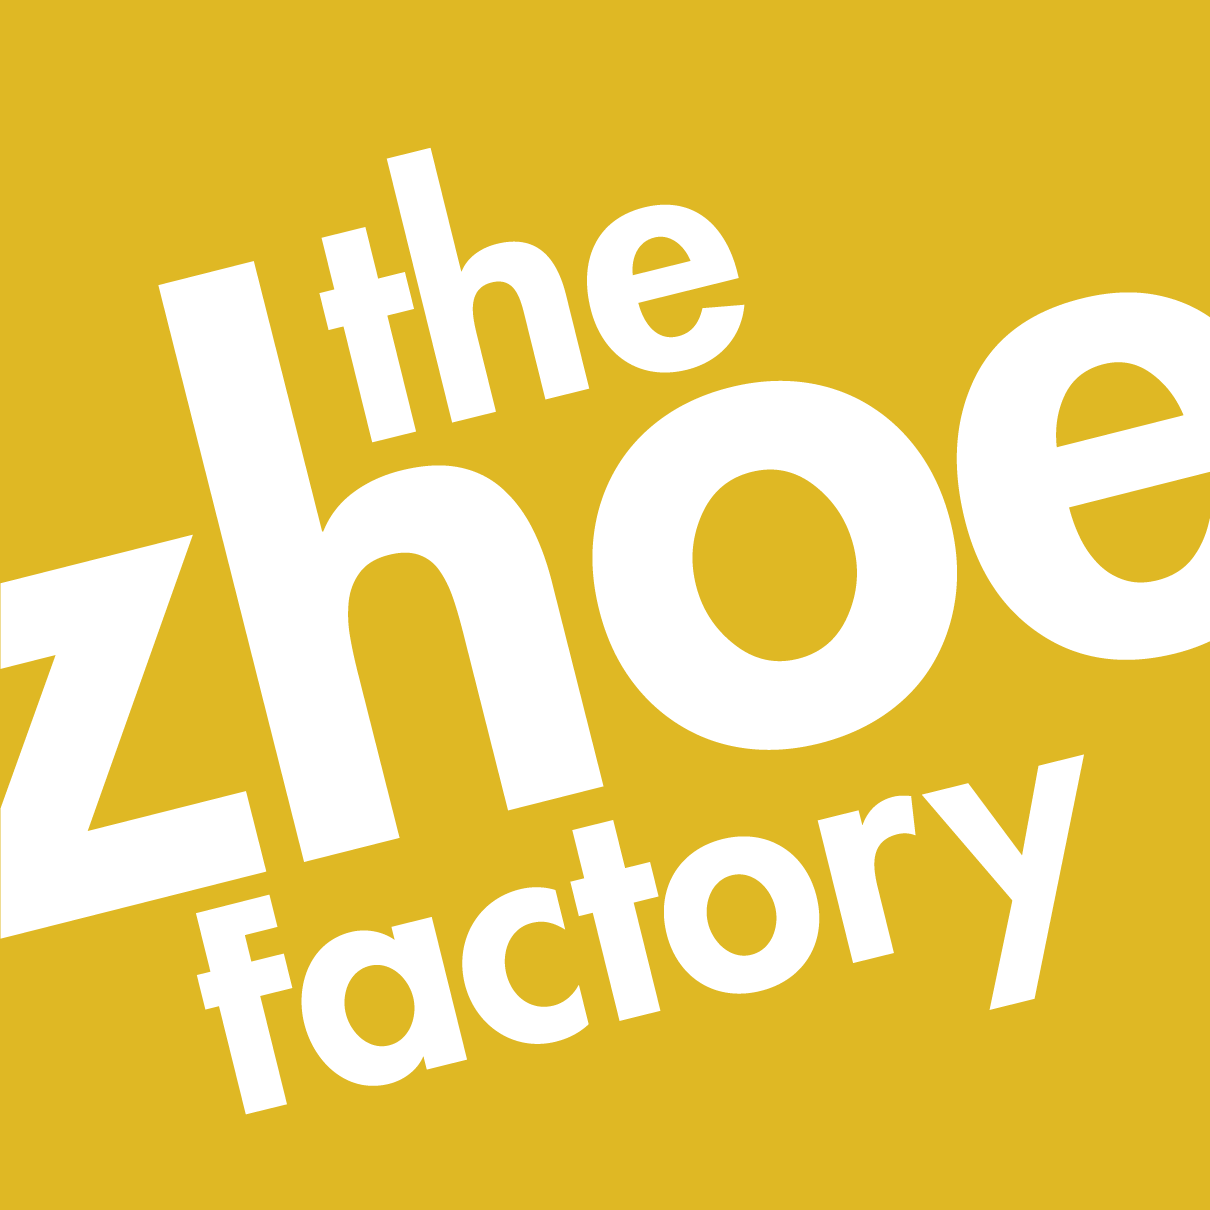 The Zhoe Factory